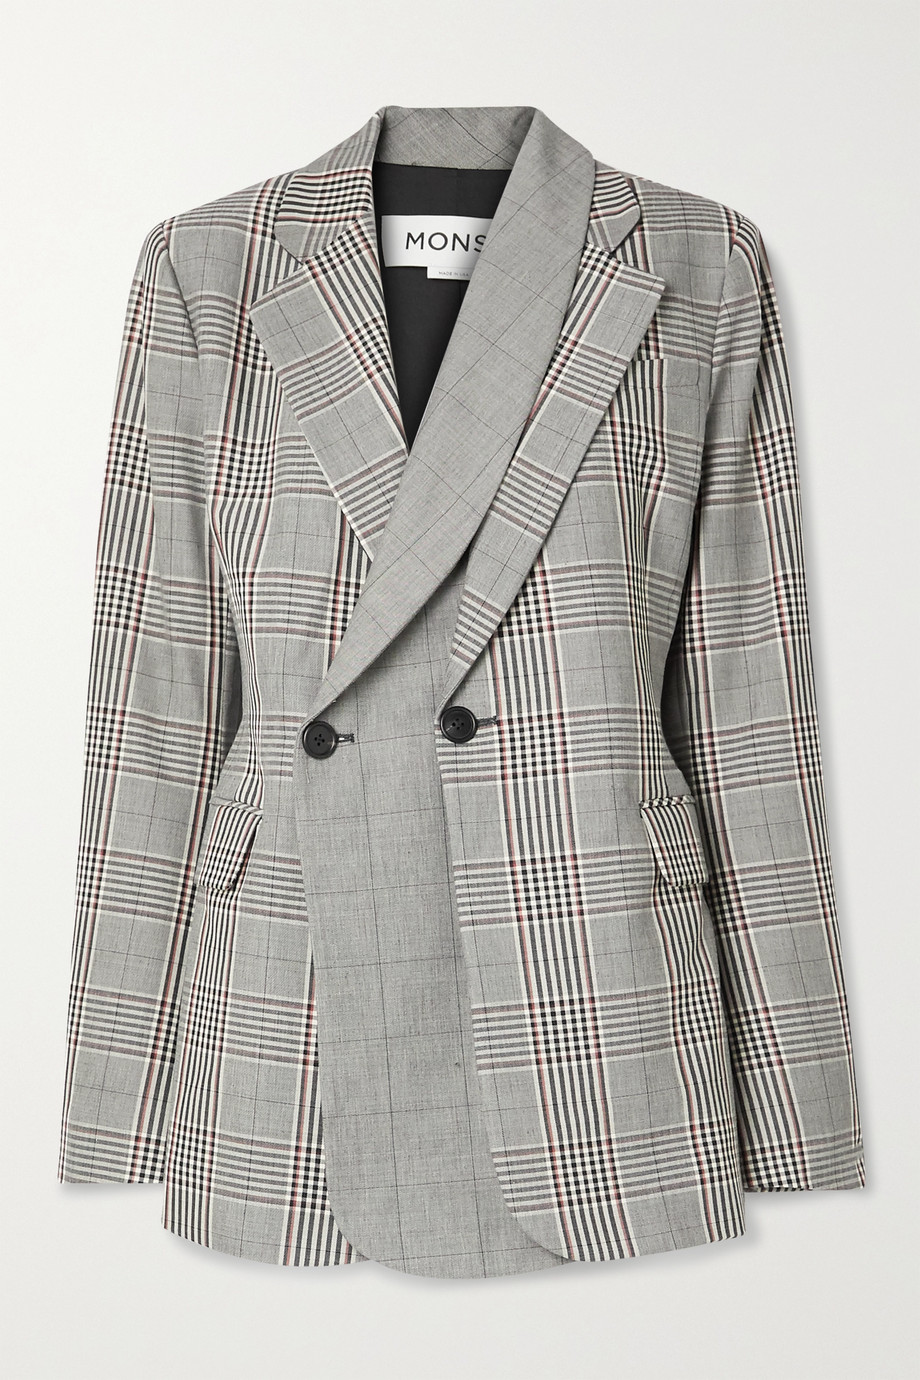 Monse Layered double-breasted Prince of Wales checked wool-blend blazer